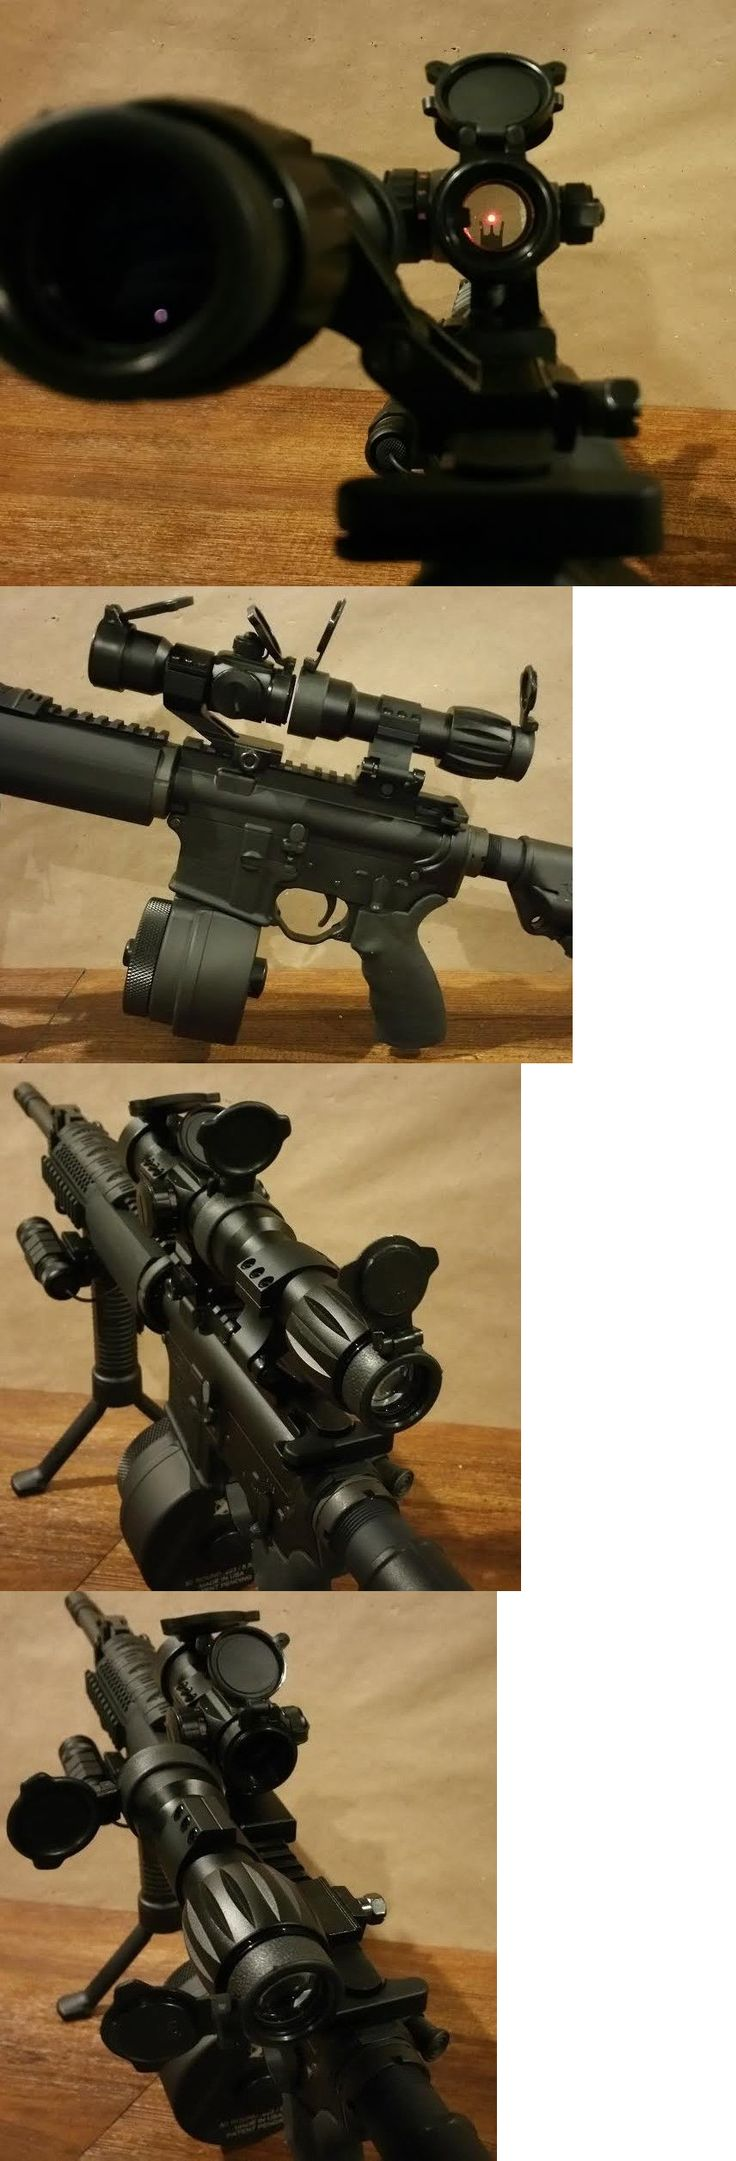 Red Dot and Laser Scopes 66827: Red Dot Sight And 5X Magnifier Fts Mount Eotech Aimpoint Tactical Scope Reticle -> BUY IT NOW ONLY: $139.99 on eBay!